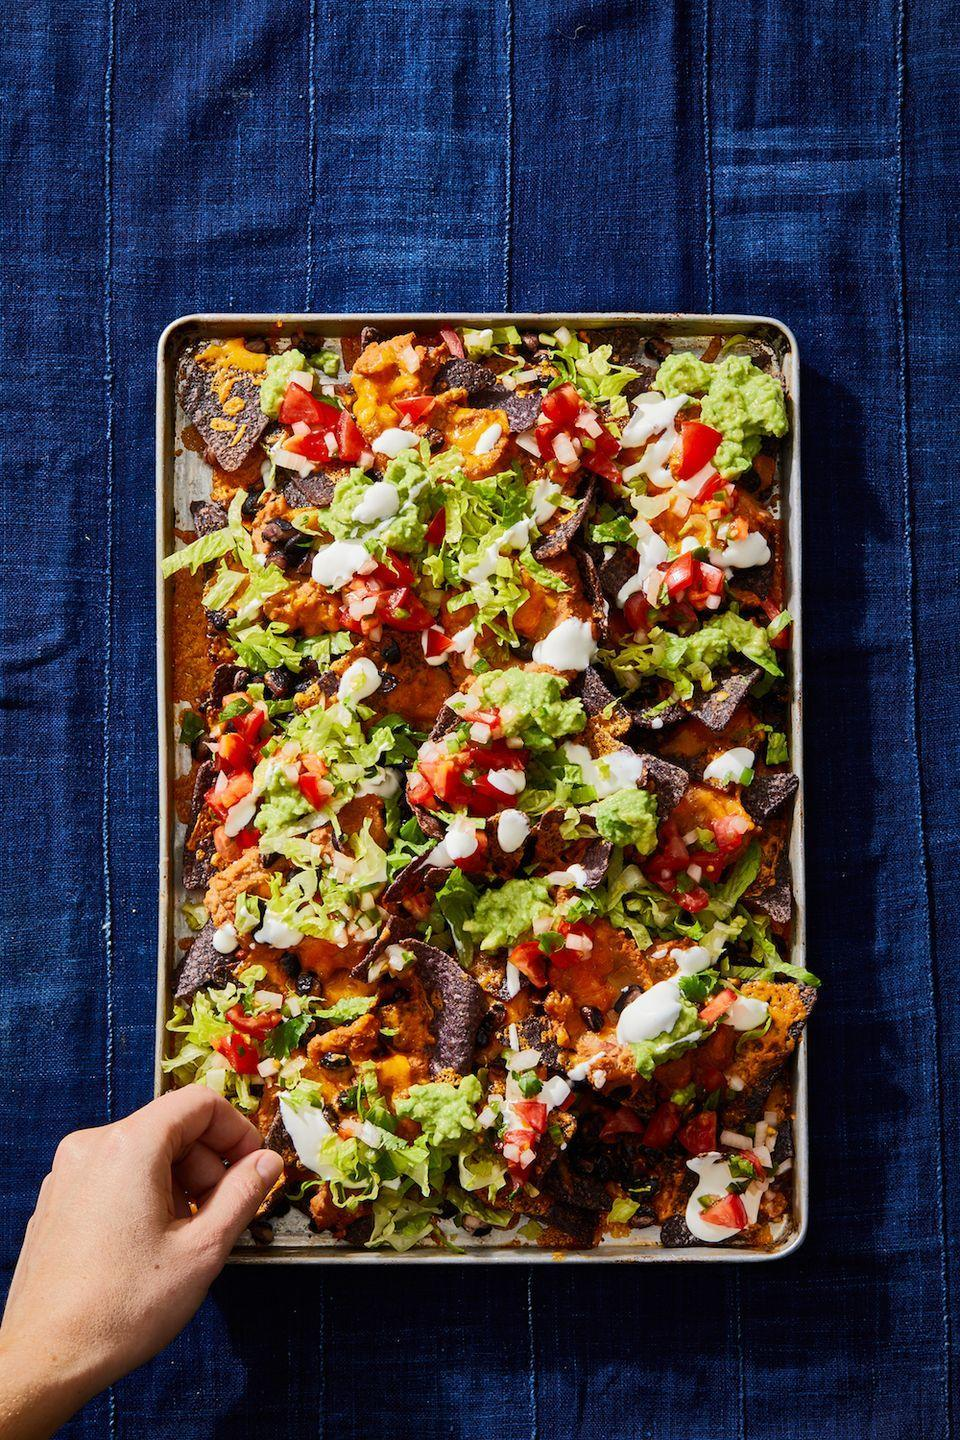 """<p>With refried and black beans (and lots of cheese!), you won't miss the meat on these easy nachos.</p><p><em><a href=""""https://www.goodhousekeeping.com/food-recipes/a29960234/how-to-make-nachos-recipe/"""" rel=""""nofollow noopener"""" target=""""_blank"""" data-ylk=""""slk:Get the recipe for Double Bean Sheet Pan Nachos »"""" class=""""link rapid-noclick-resp"""">Get the recipe for Double Bean Sheet Pan Nachos »</a></em></p><p><strong>RELATED: </strong><a href=""""https://www.goodhousekeeping.com/food-recipes/g25727072/vegetarian-super-bowl-recipes/"""" rel=""""nofollow noopener"""" target=""""_blank"""" data-ylk=""""slk:30 Vegetarian Super Bowl Recipes That Prove Game Day Can Be Meat-Free"""" class=""""link rapid-noclick-resp"""">30 Vegetarian Super Bowl Recipes That Prove Game Day Can Be Meat-Free</a><br></p>"""